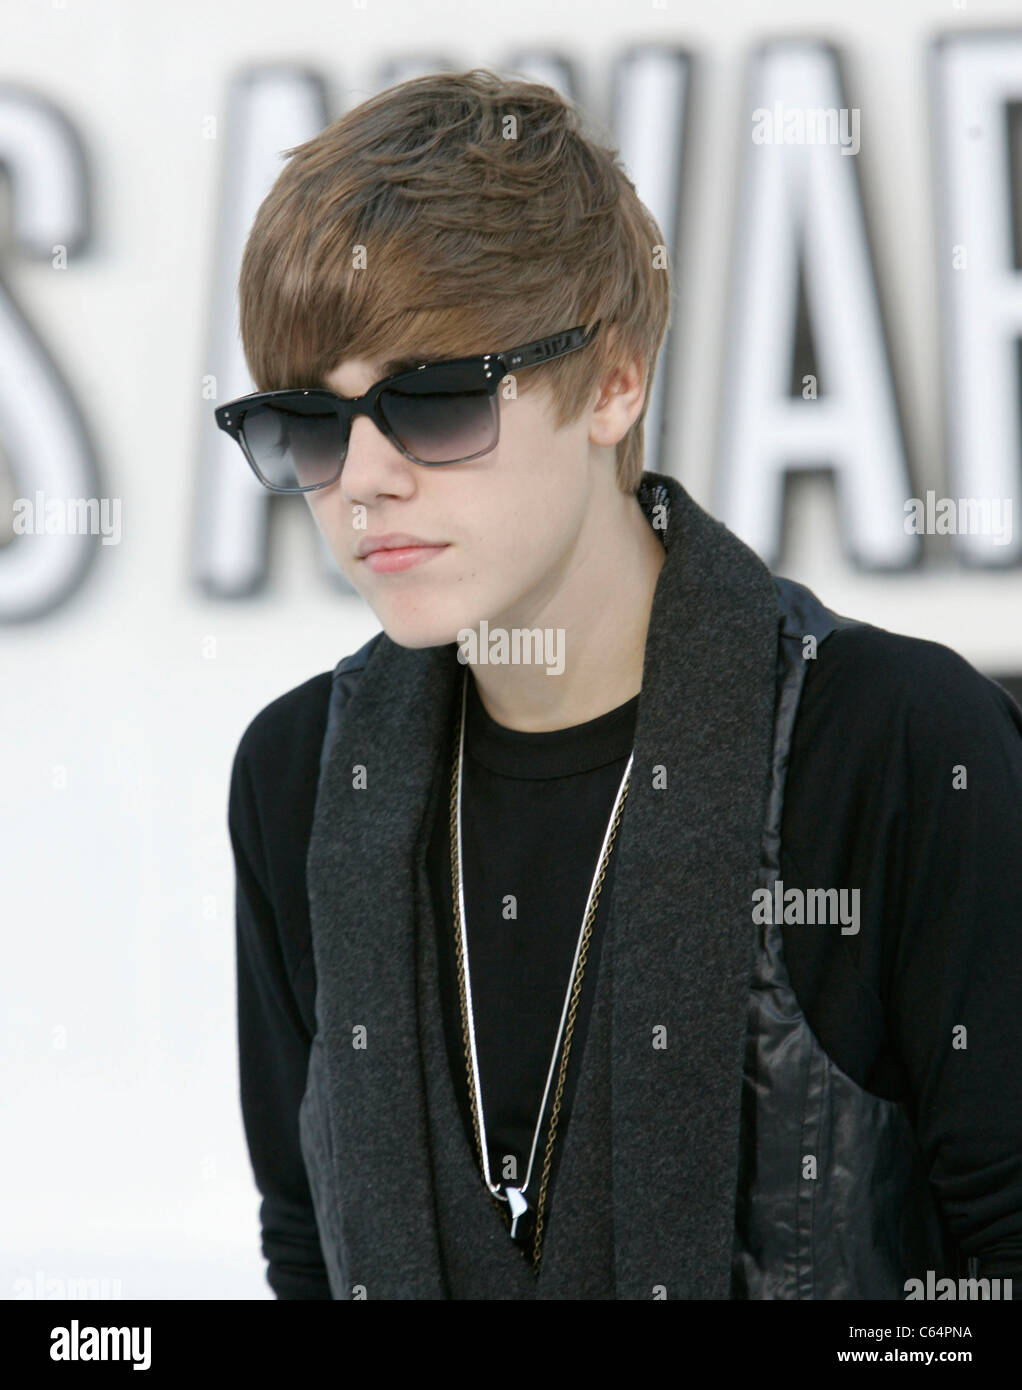 Justin Bieber at arrivals for 2010 MTV Video Music Awards VMA's - ARRIVALS - NO U.S. PRINT USAGE UNTIL 9/16/2010, - Stock Image